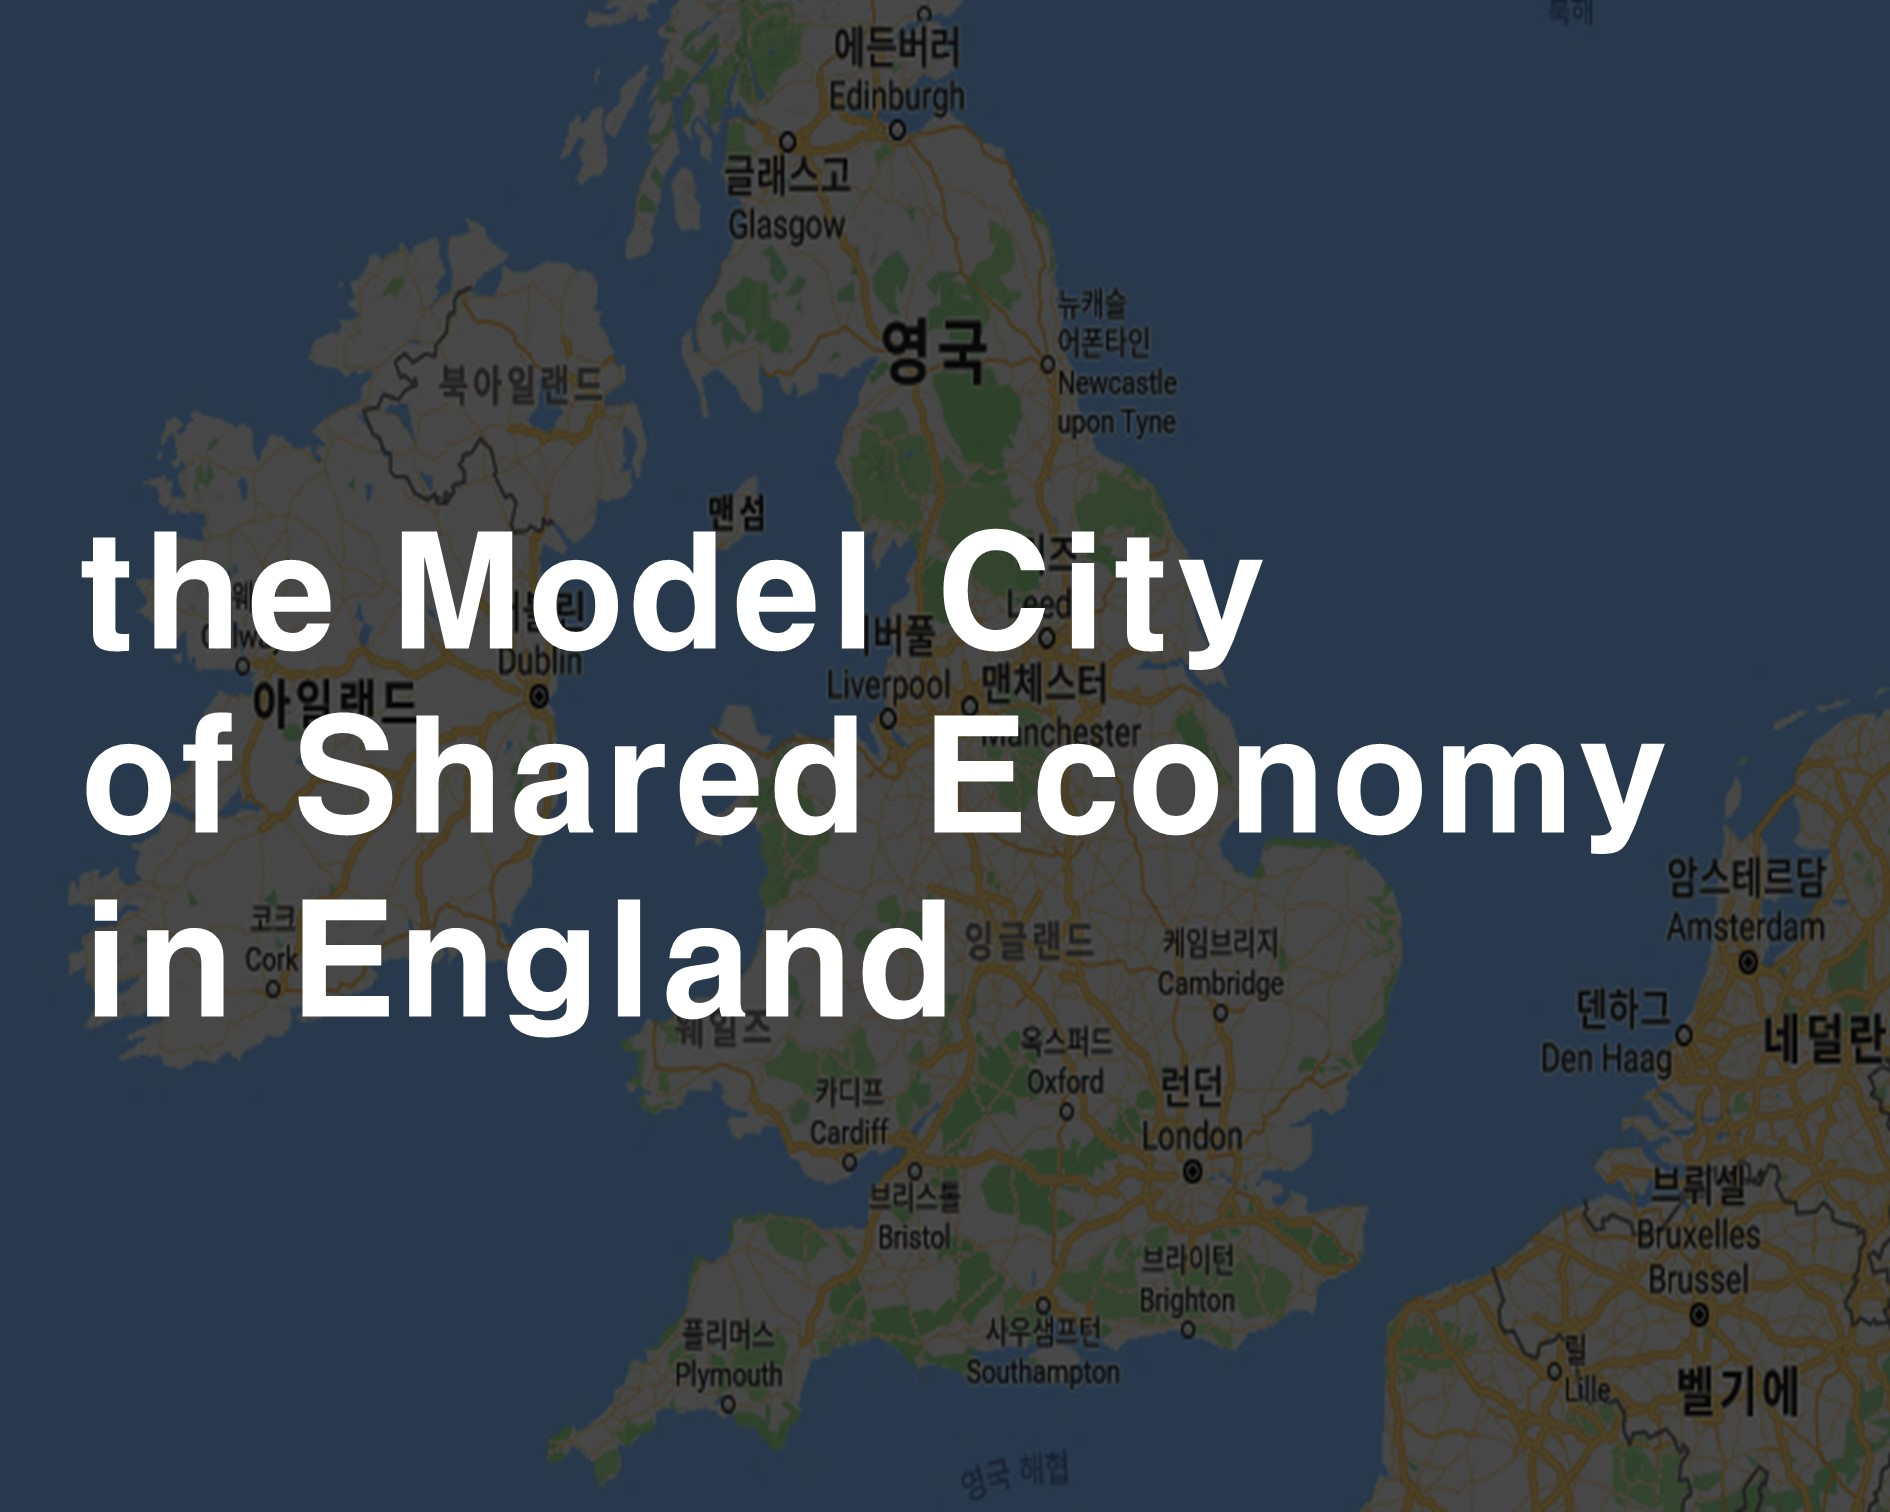 [Overseas News] the Model City of Shared Economy in England